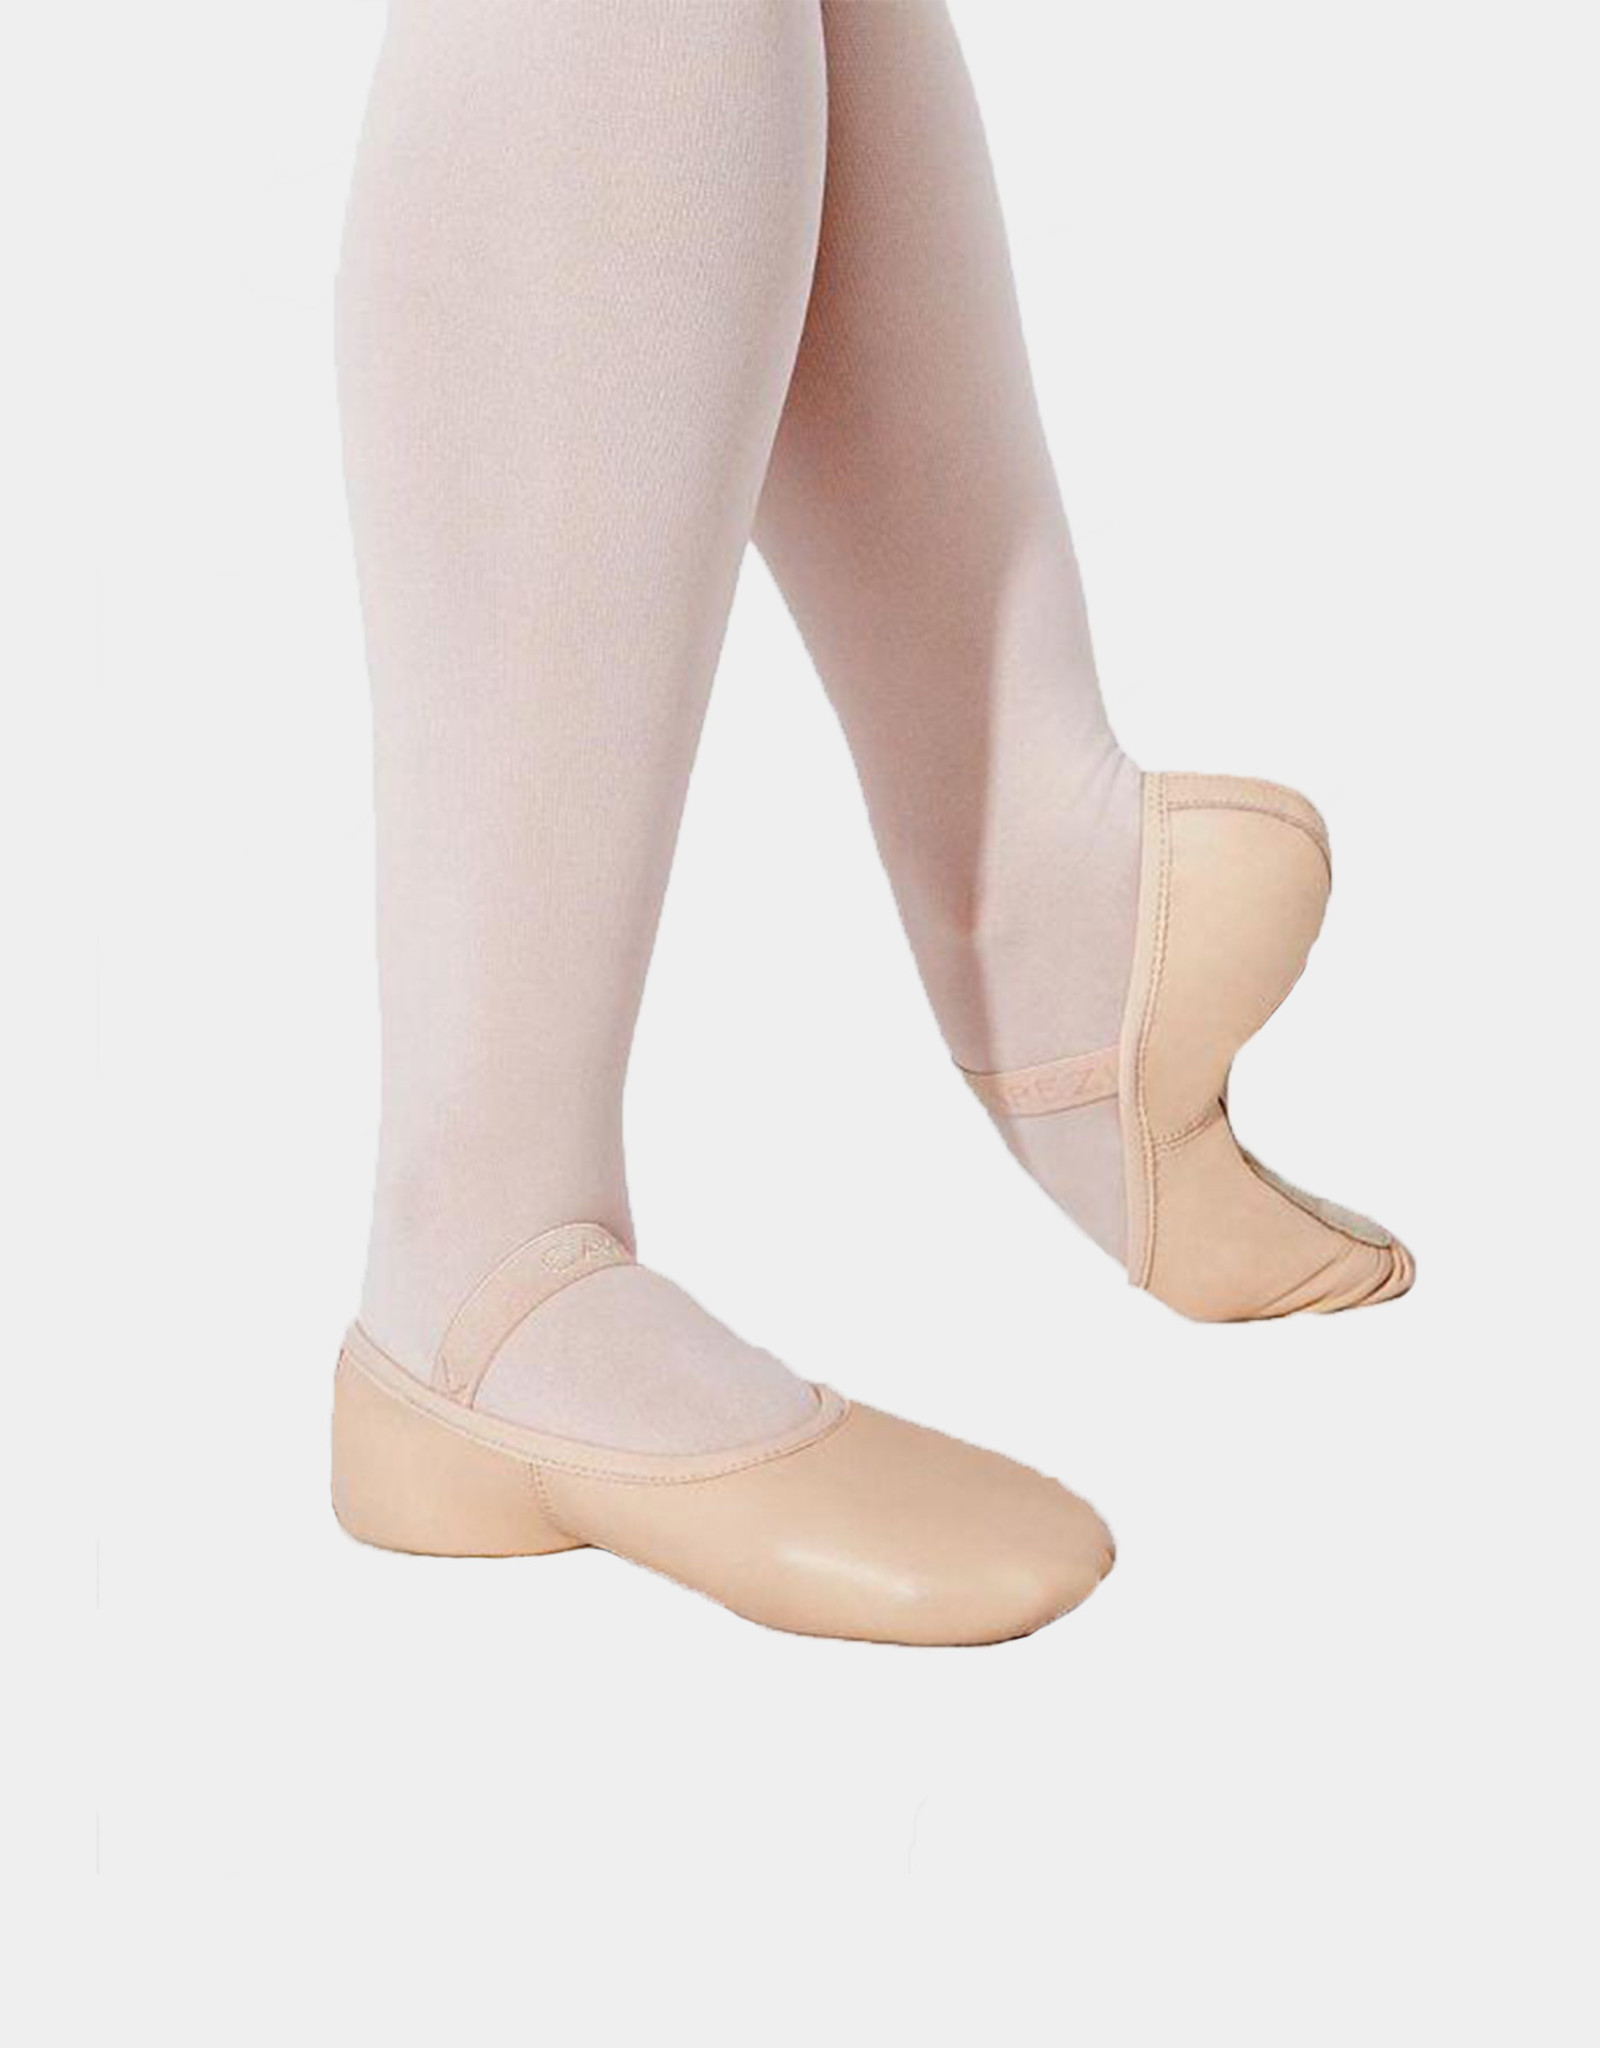 CAPEZIO LILY CHILD - LEATHER FULL SOLE BALLET SLIPPERS (212C)